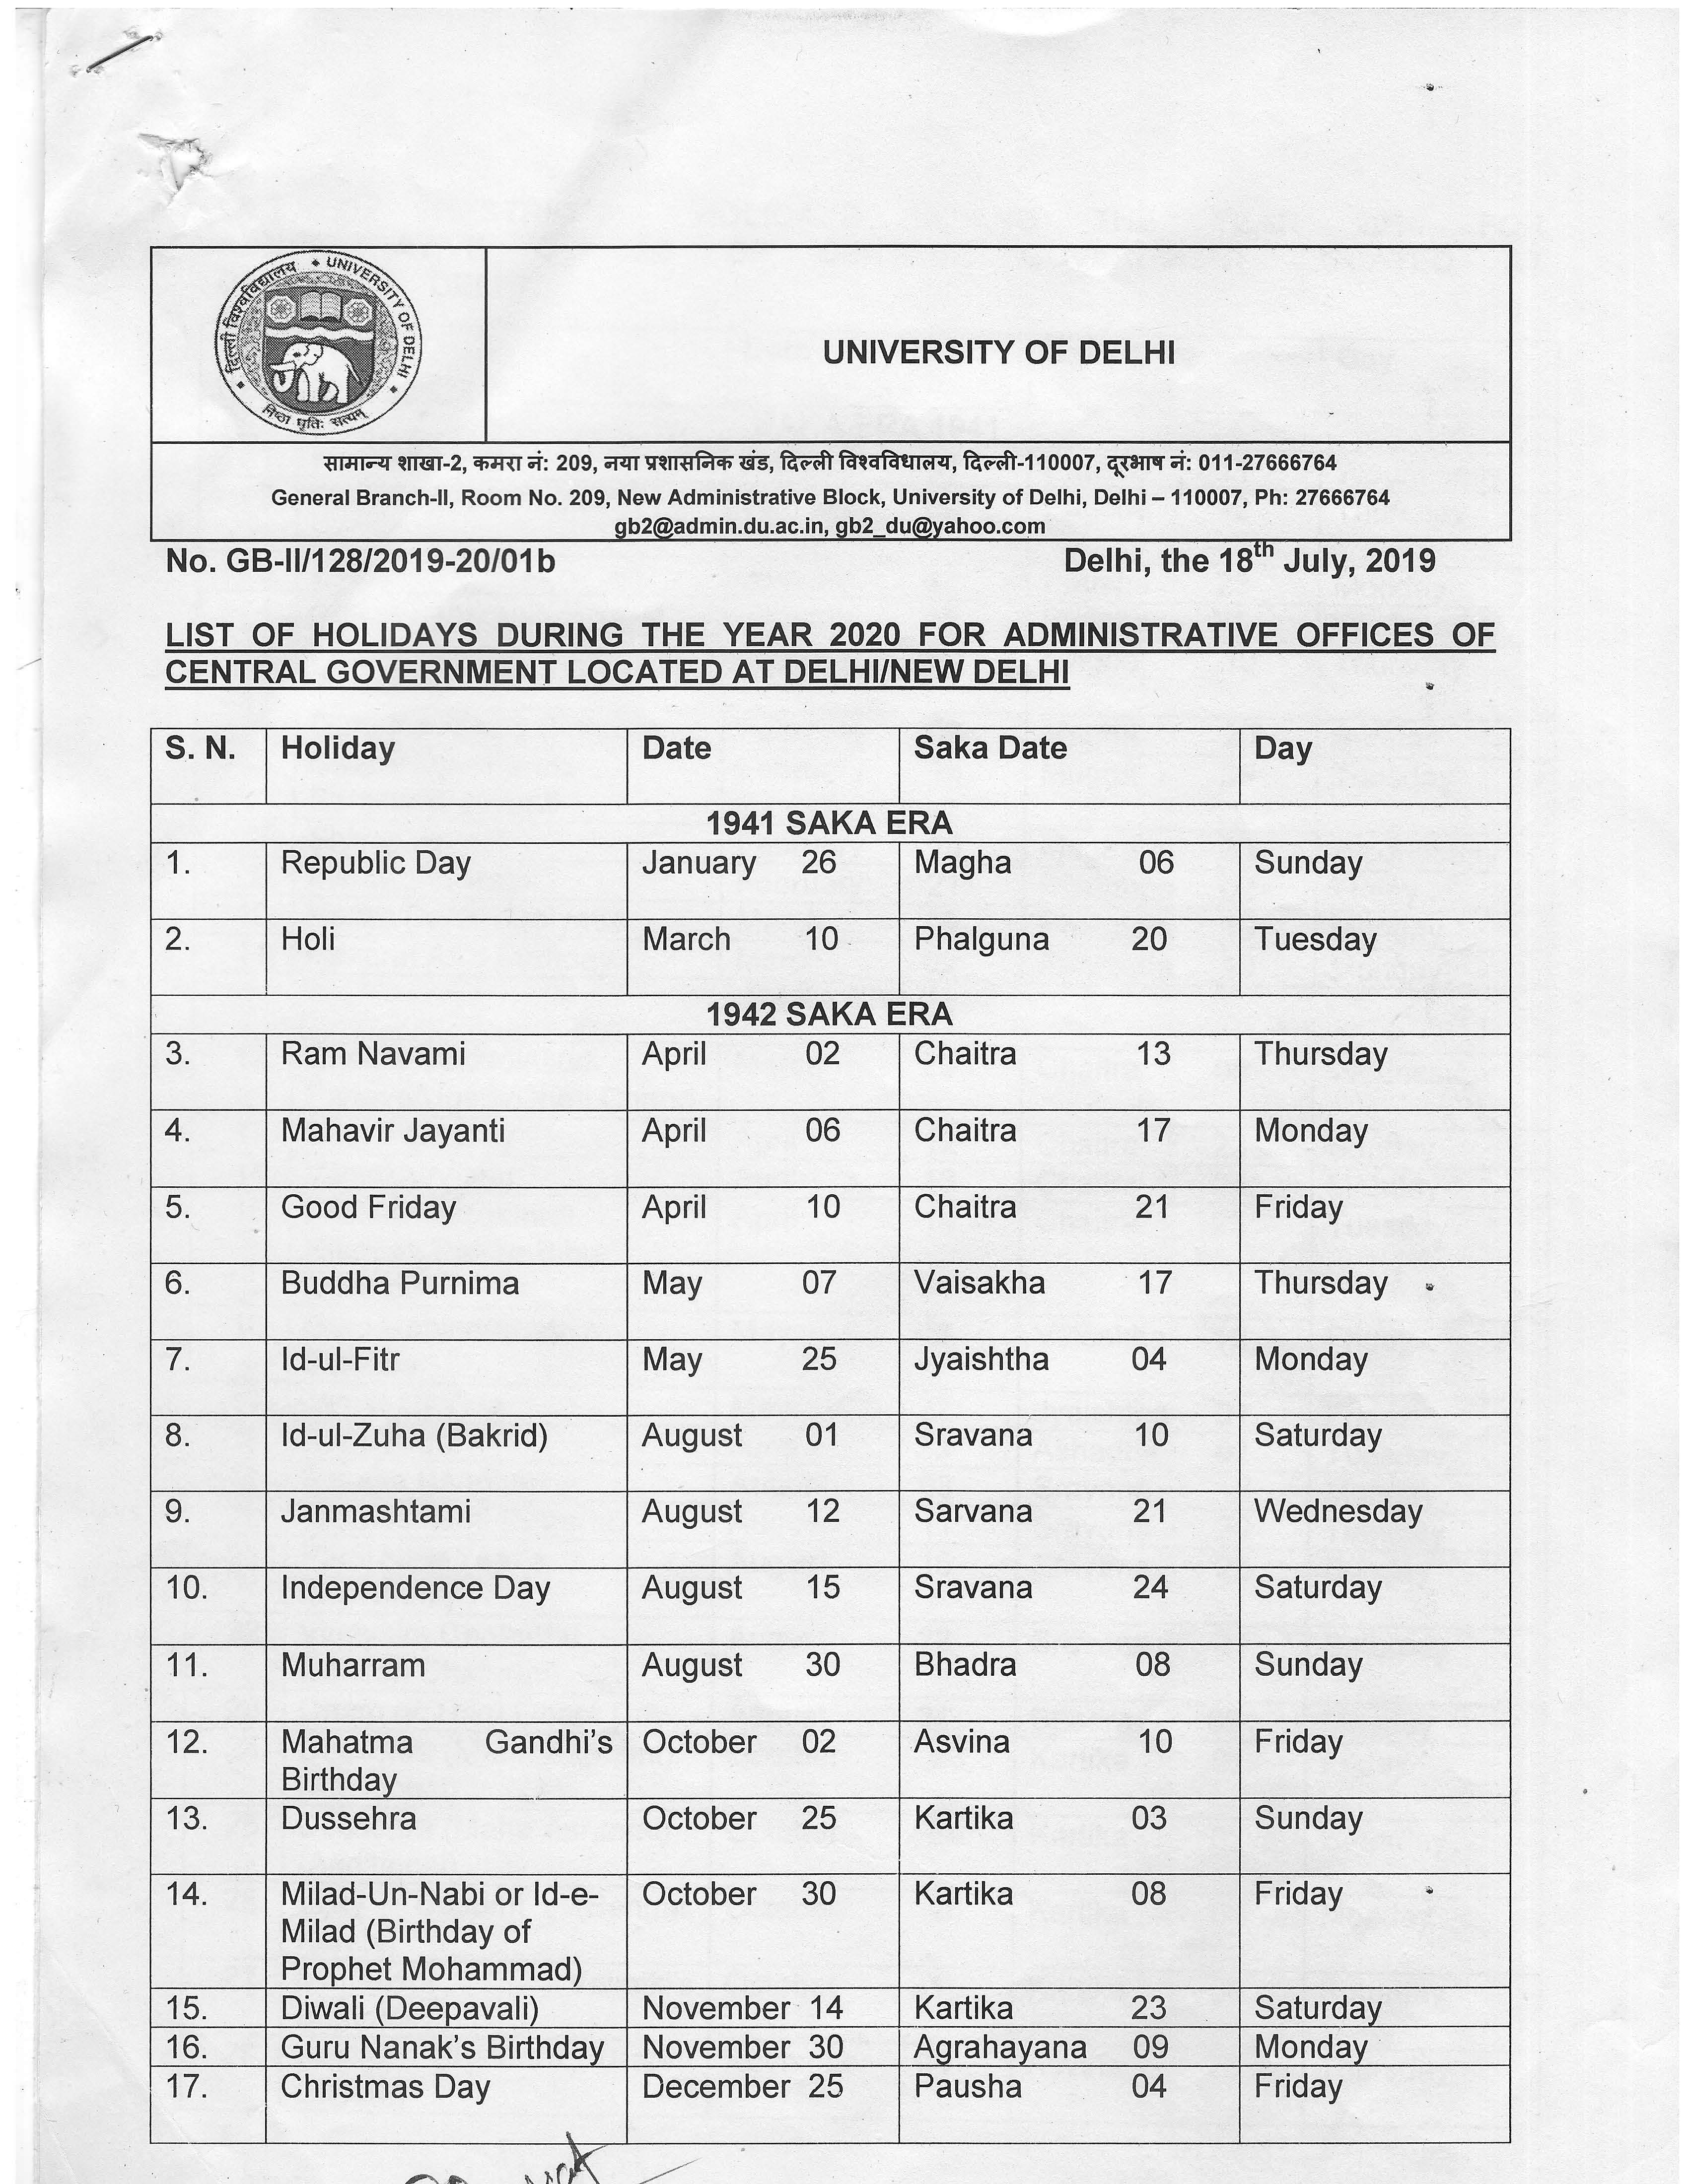 Academic Calendar - University of Delhi